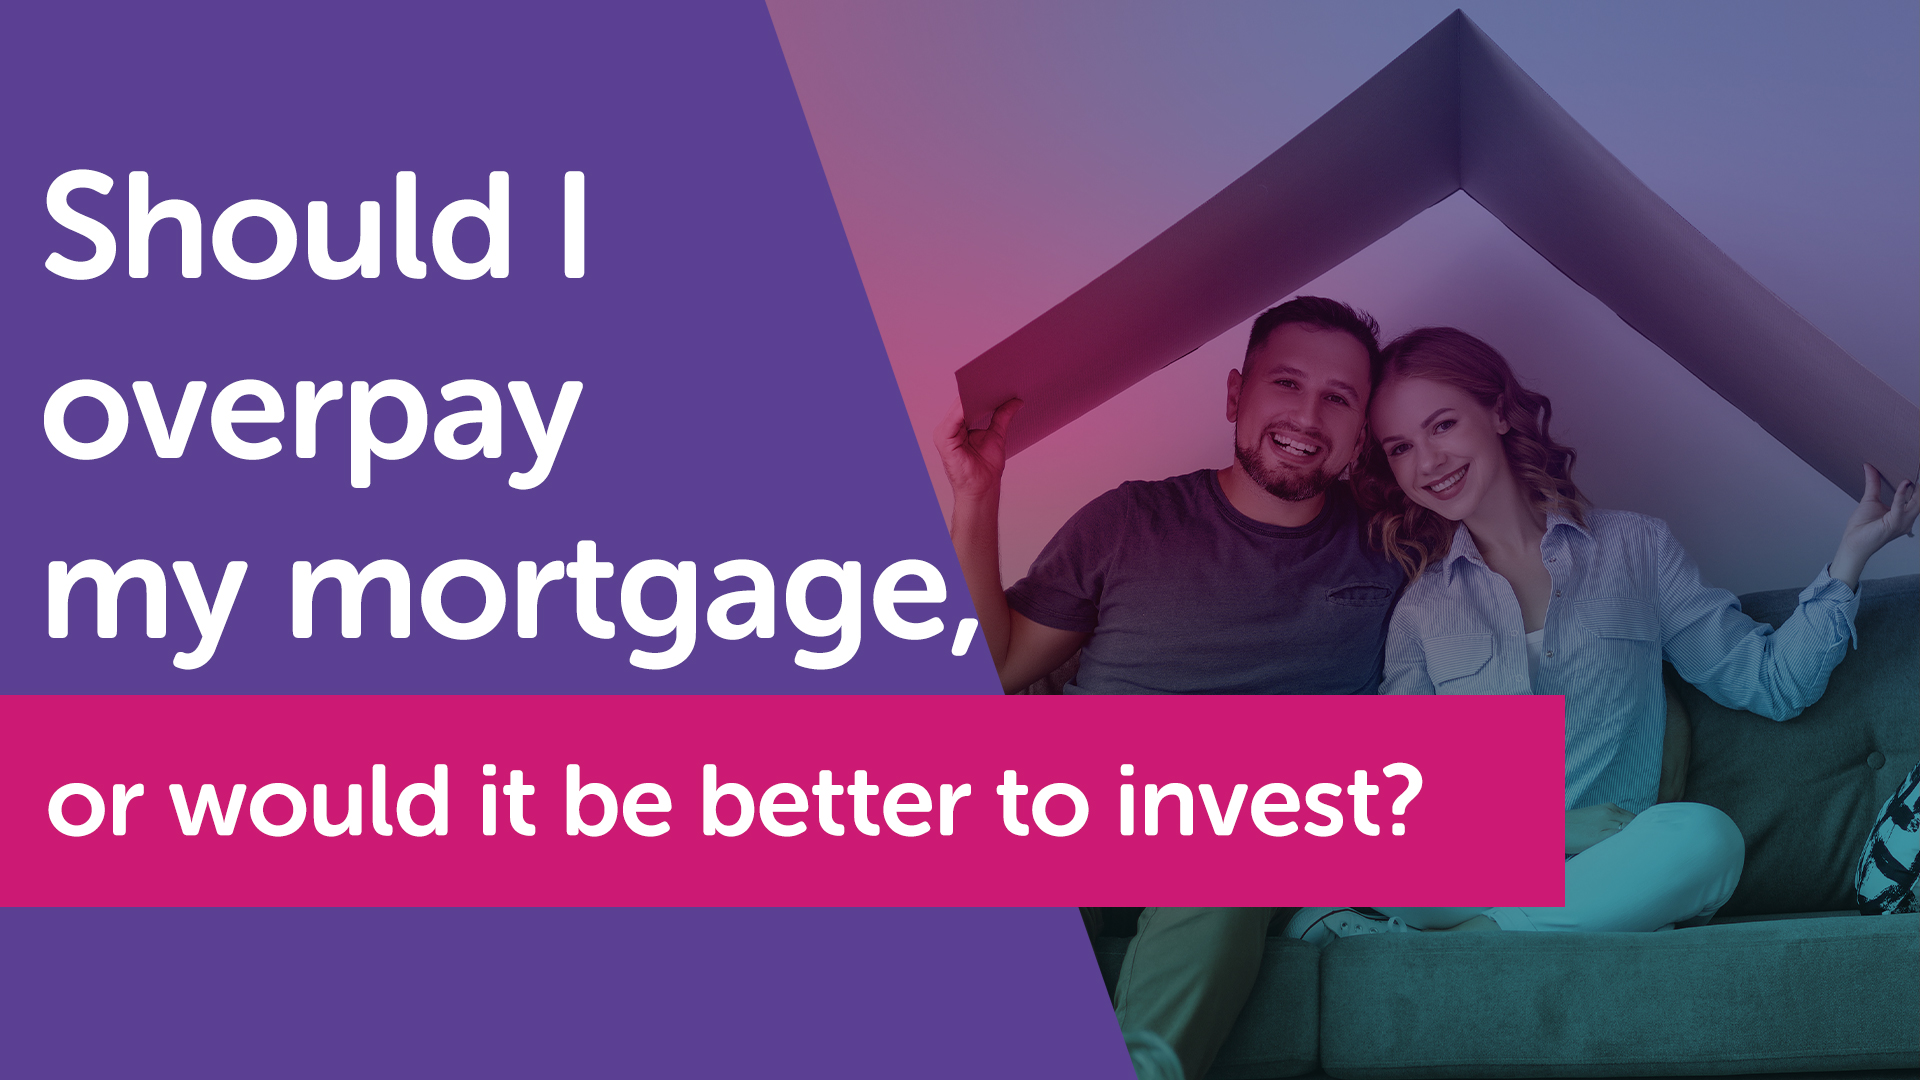 Why Don't People Overpay Their Mortgage?